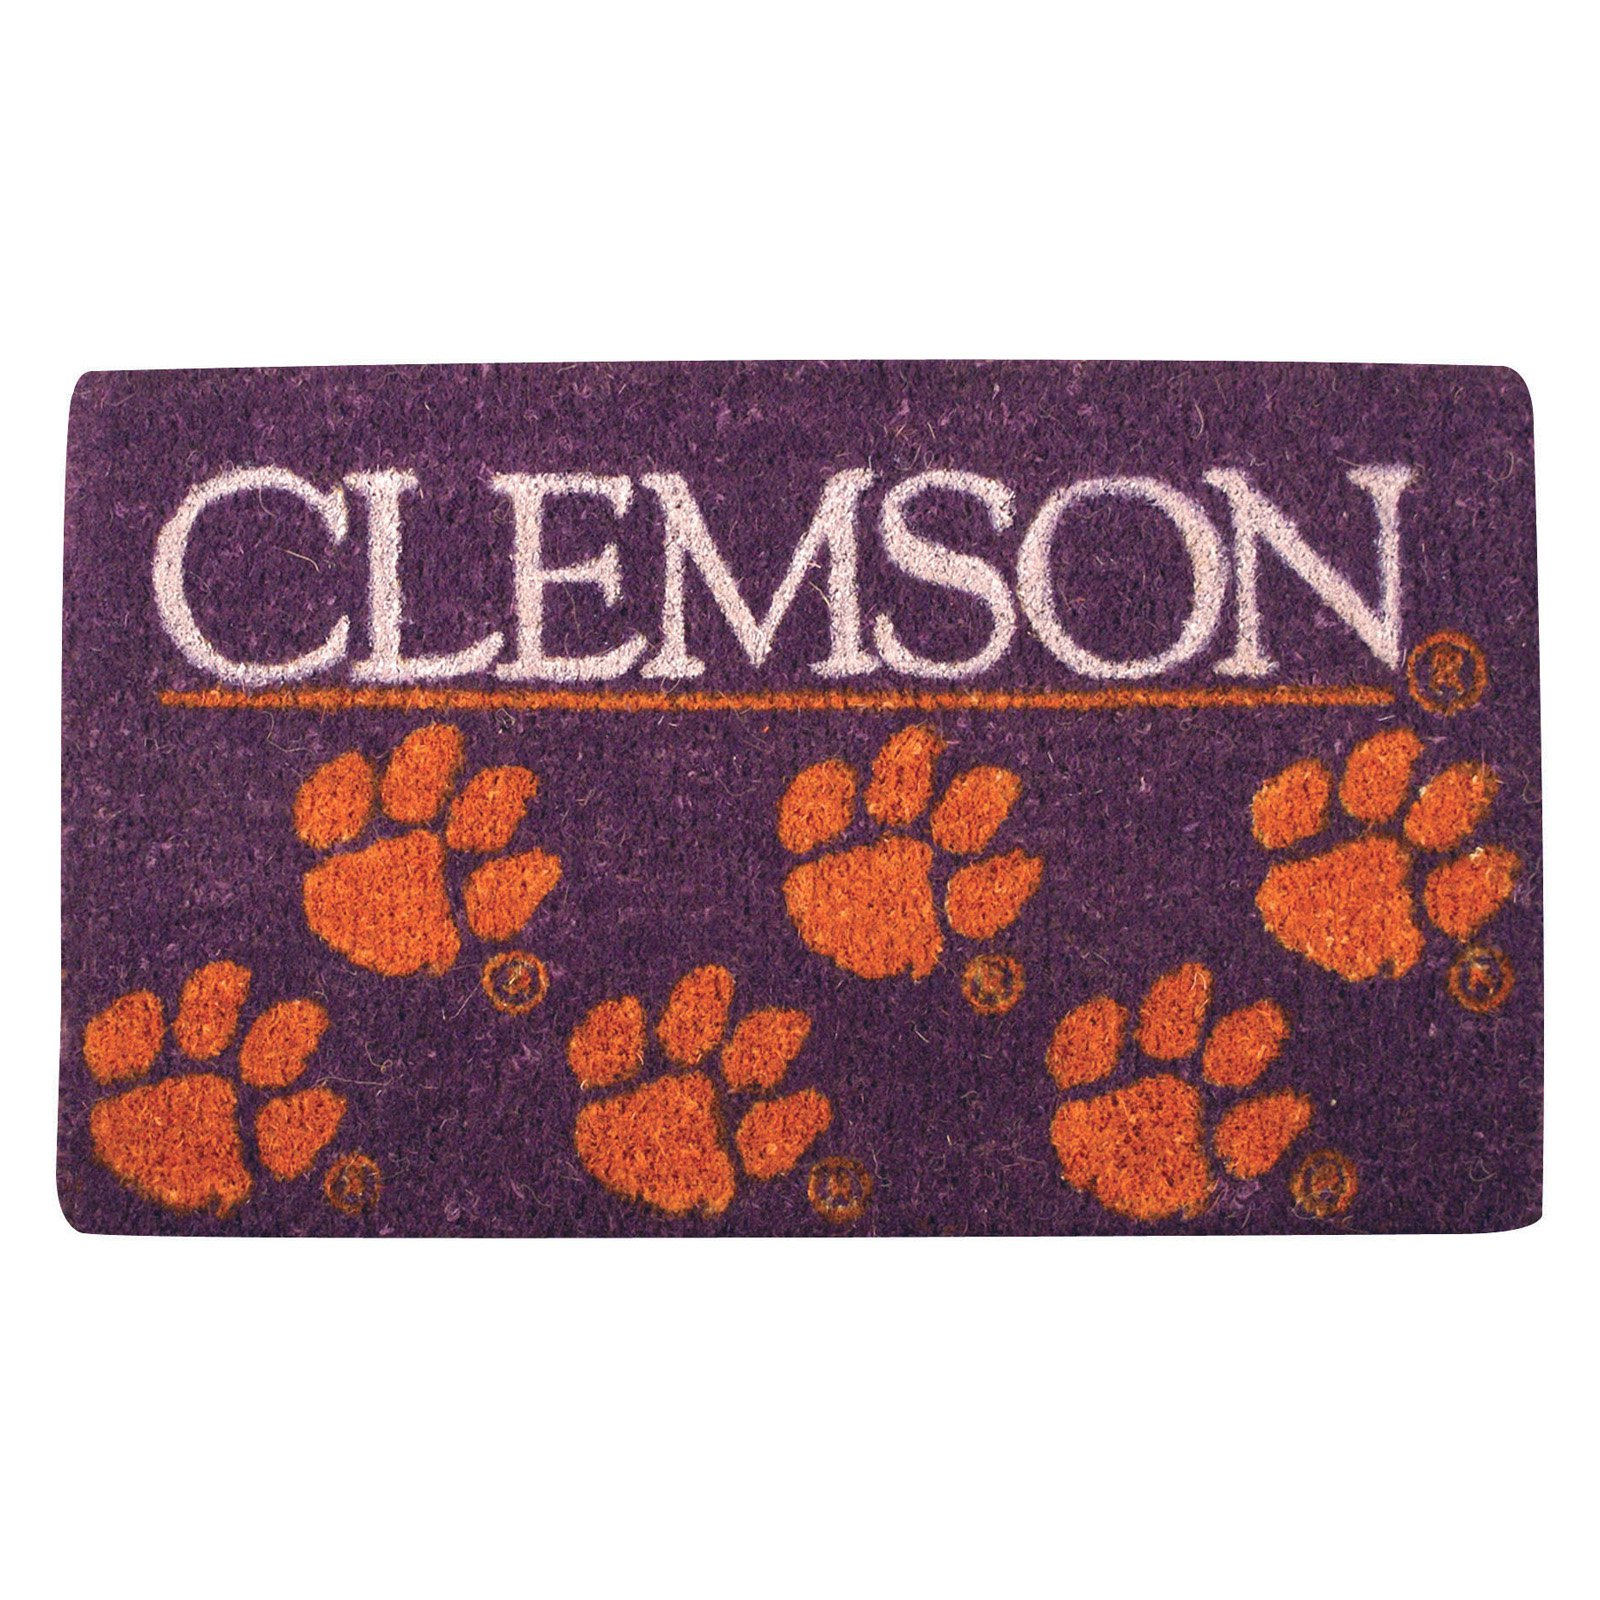 Team Sports America Collegiate Welcome Door Mat